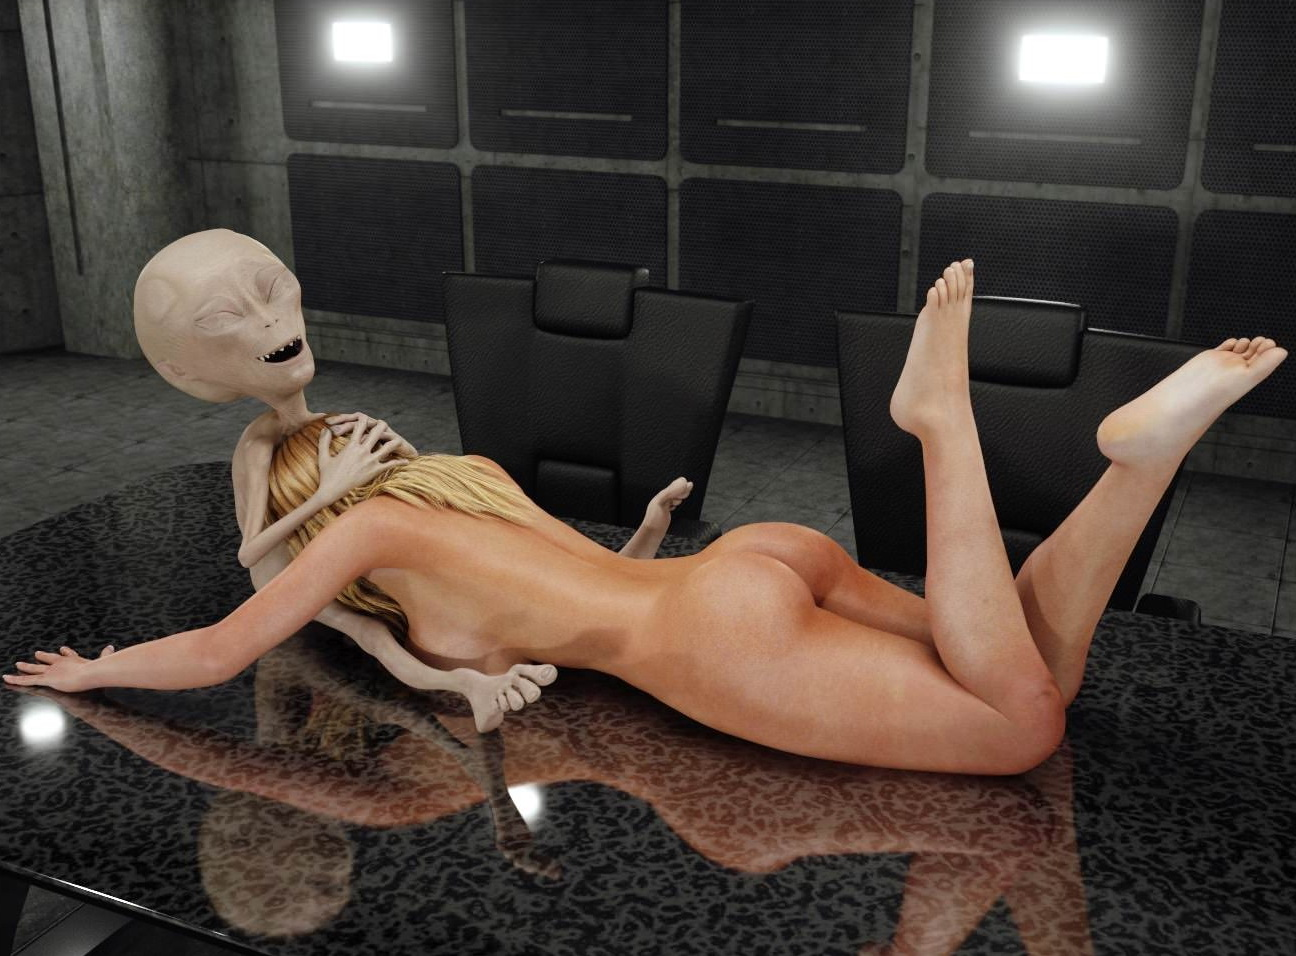 3d alien sex tgp pron videos